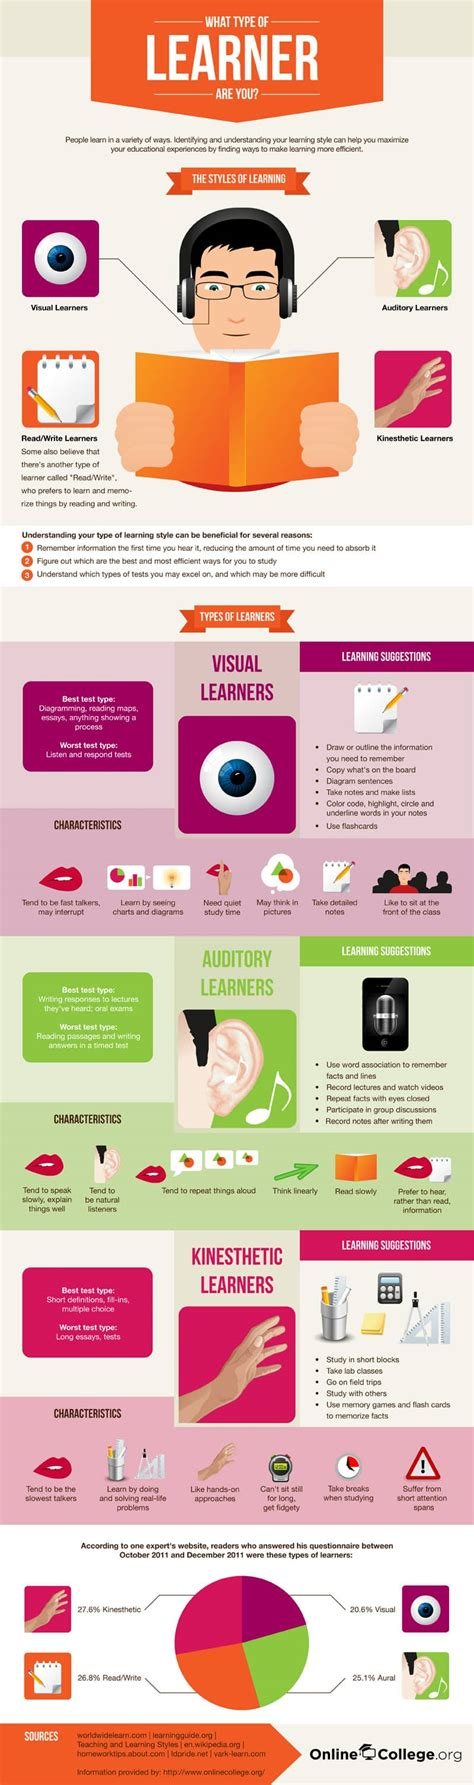 What Kind Of Learning Style Do You Have?  3bug Media